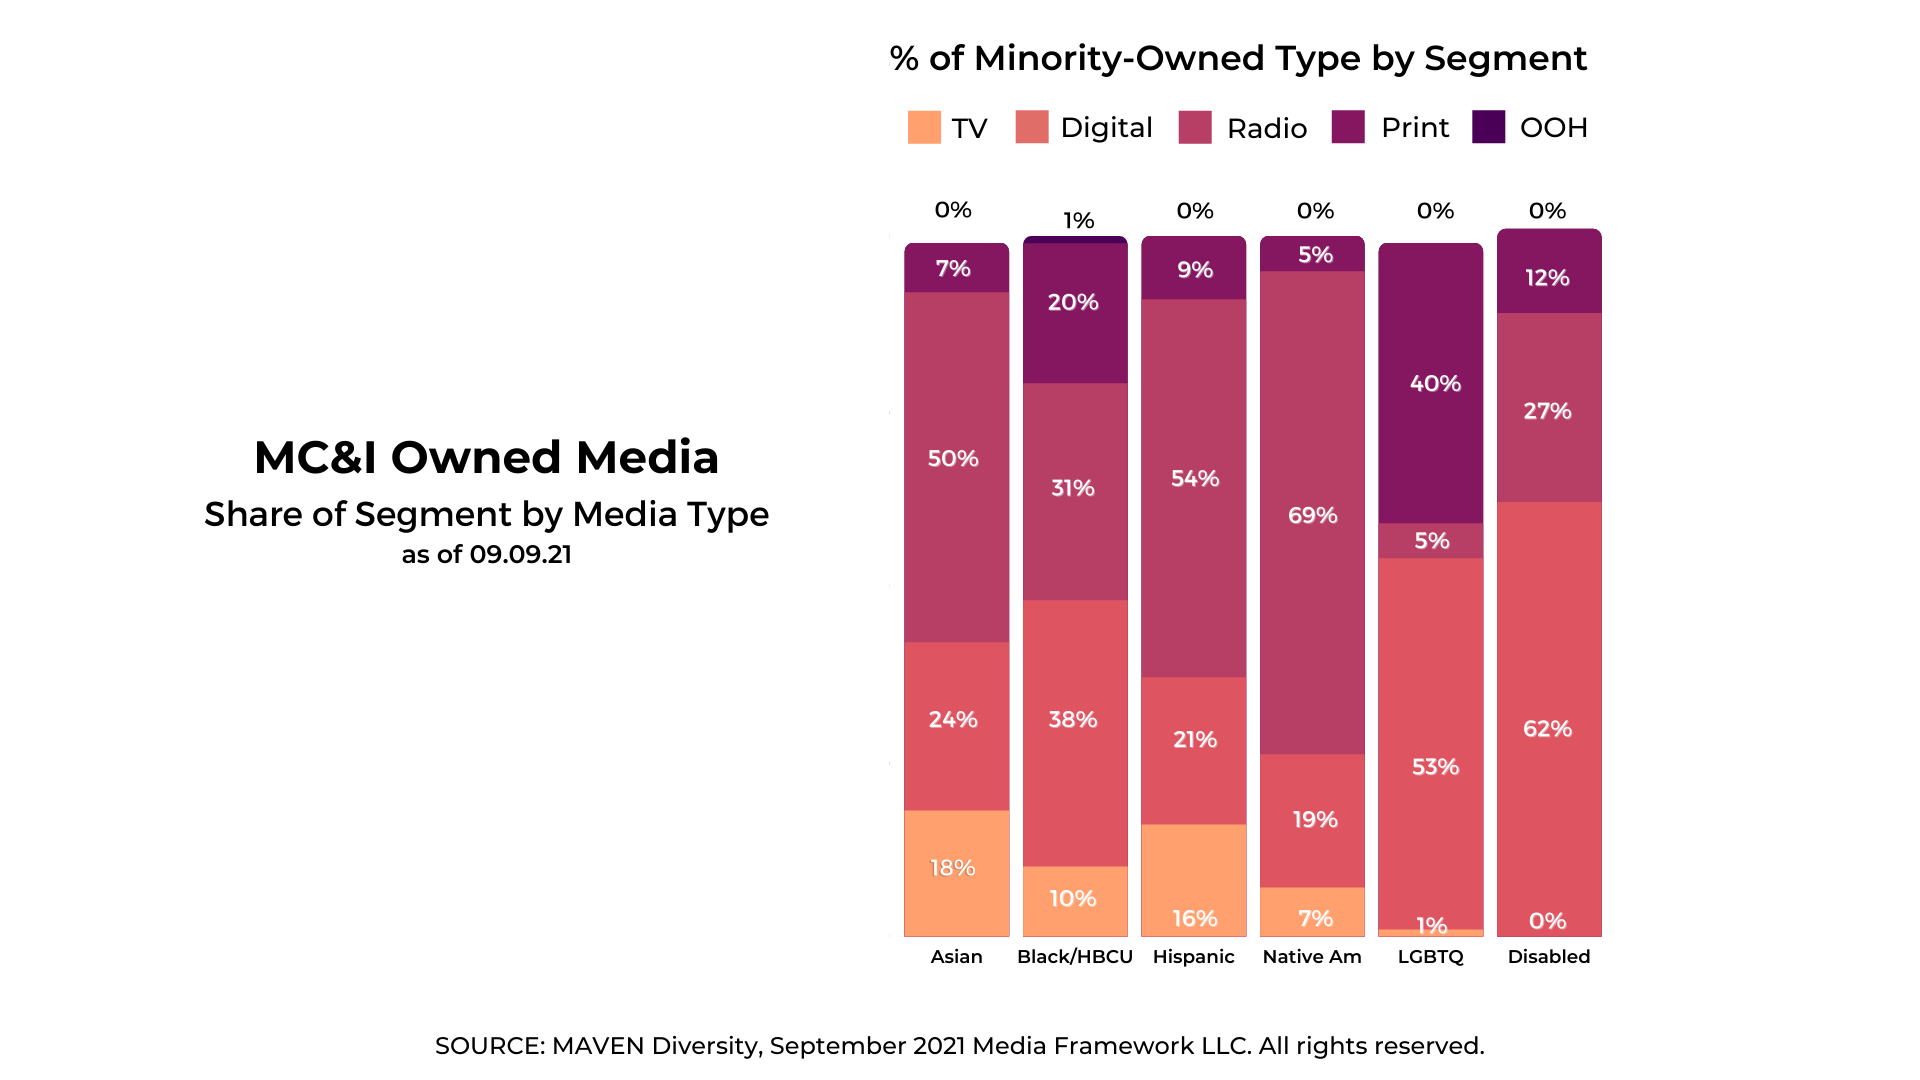 Graph showing MC&I Owned Media as a share of segment by media type